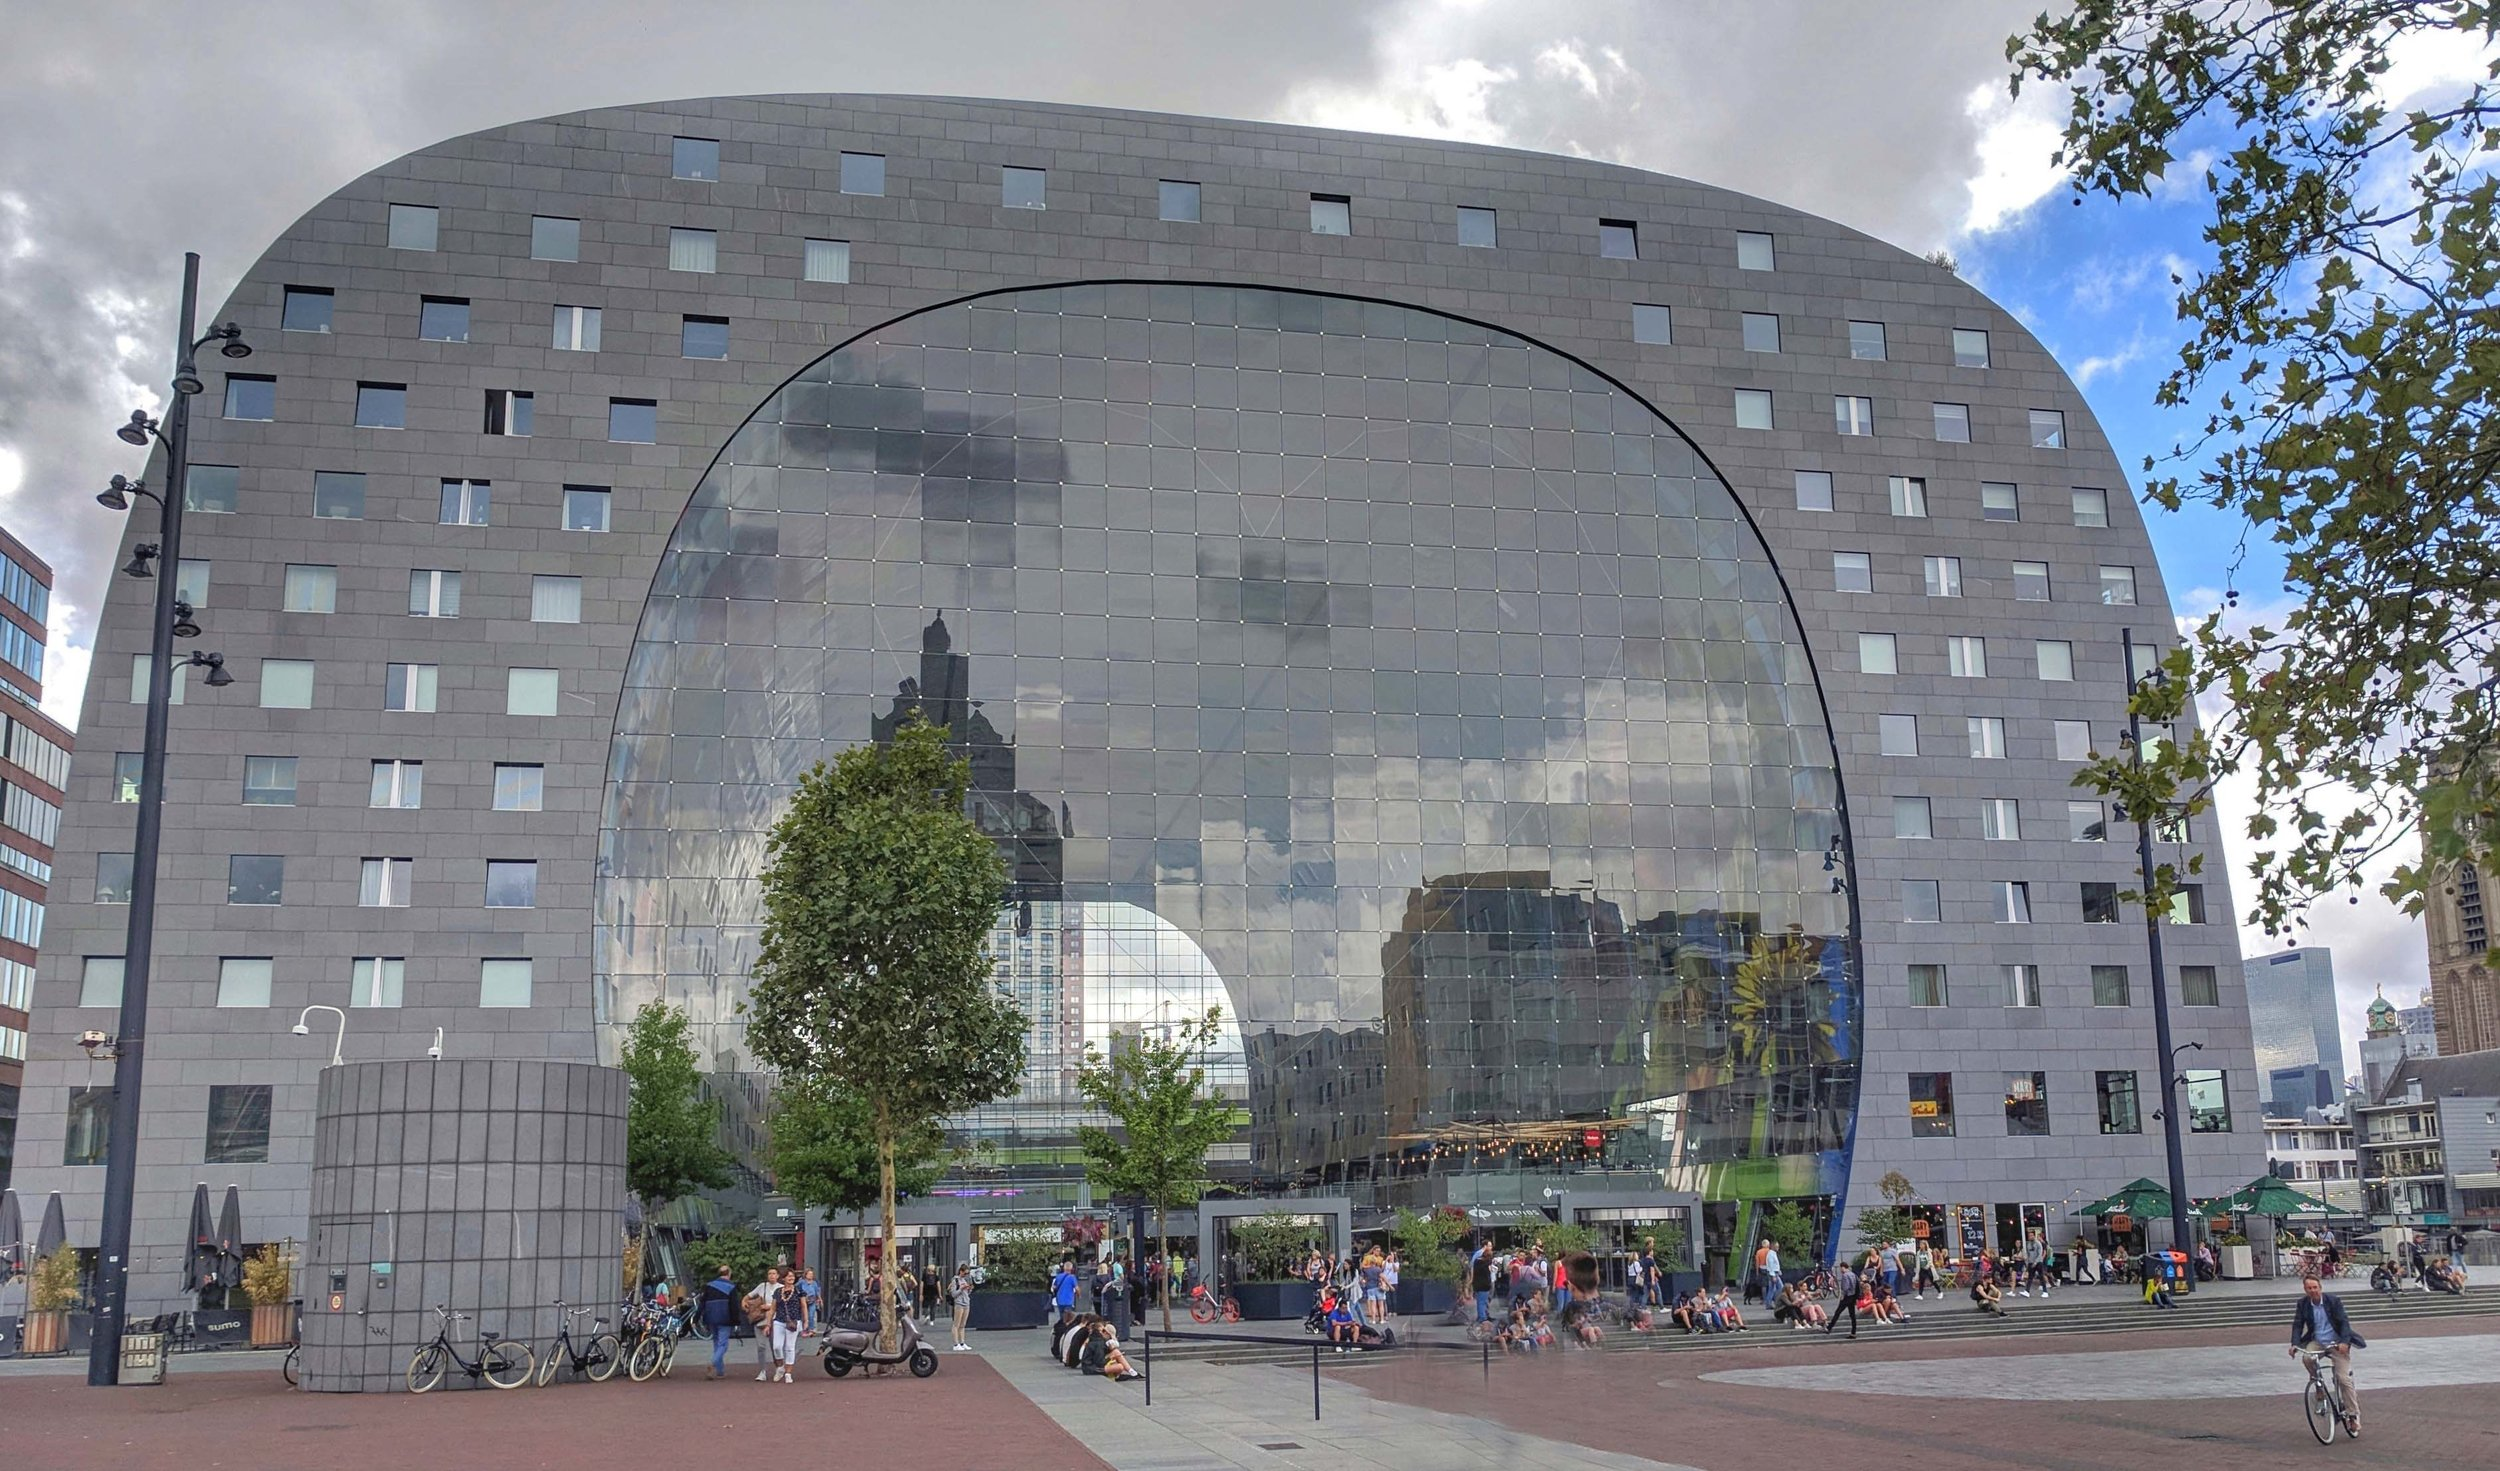 Outside of the Markthal in Rotterdam